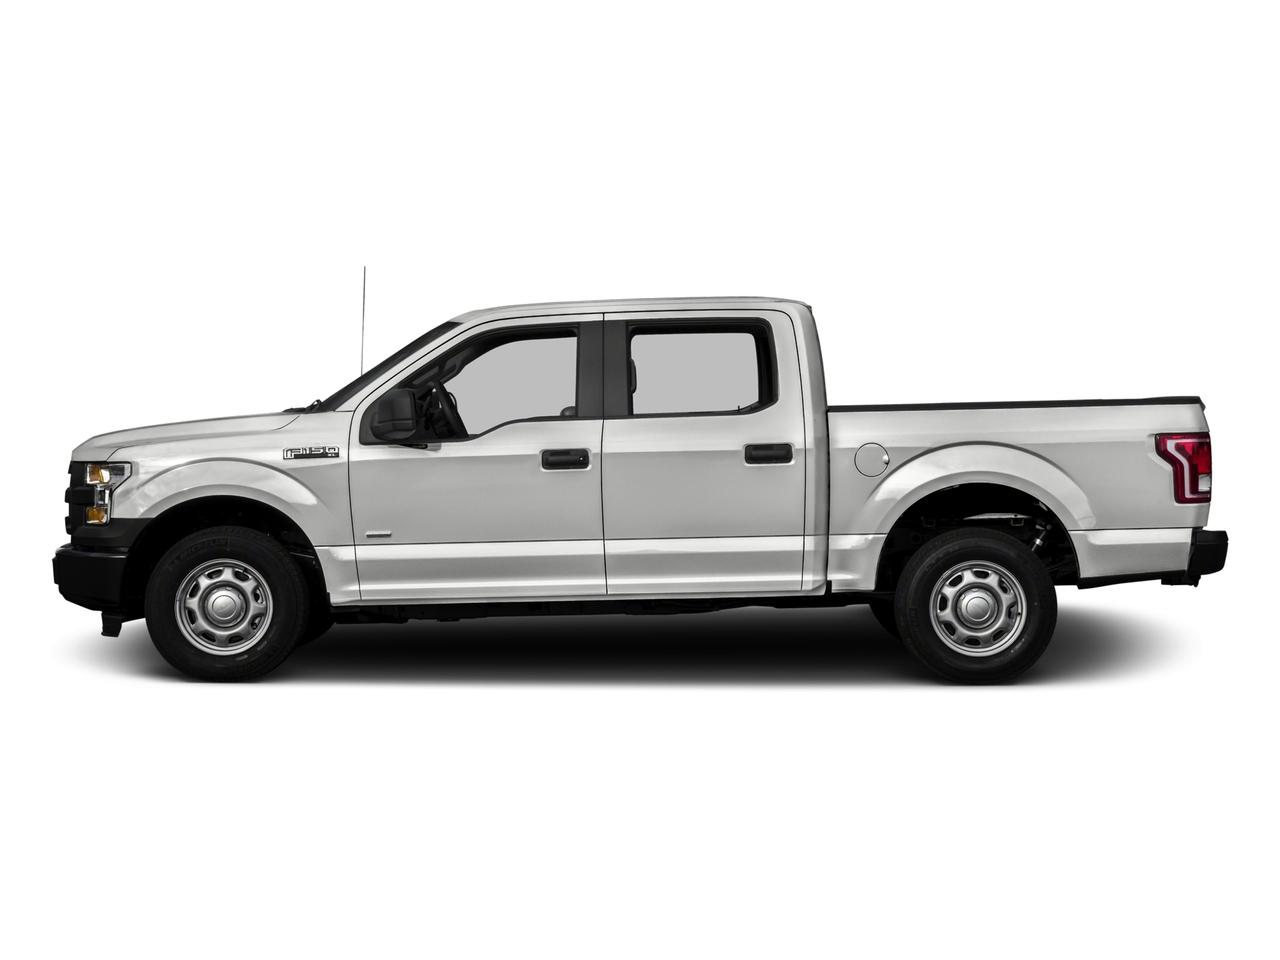 Used 2016 Ford F-150 XLT with VIN 1FTFW1EG6GKD77354 for sale in Park Rapids, Minnesota